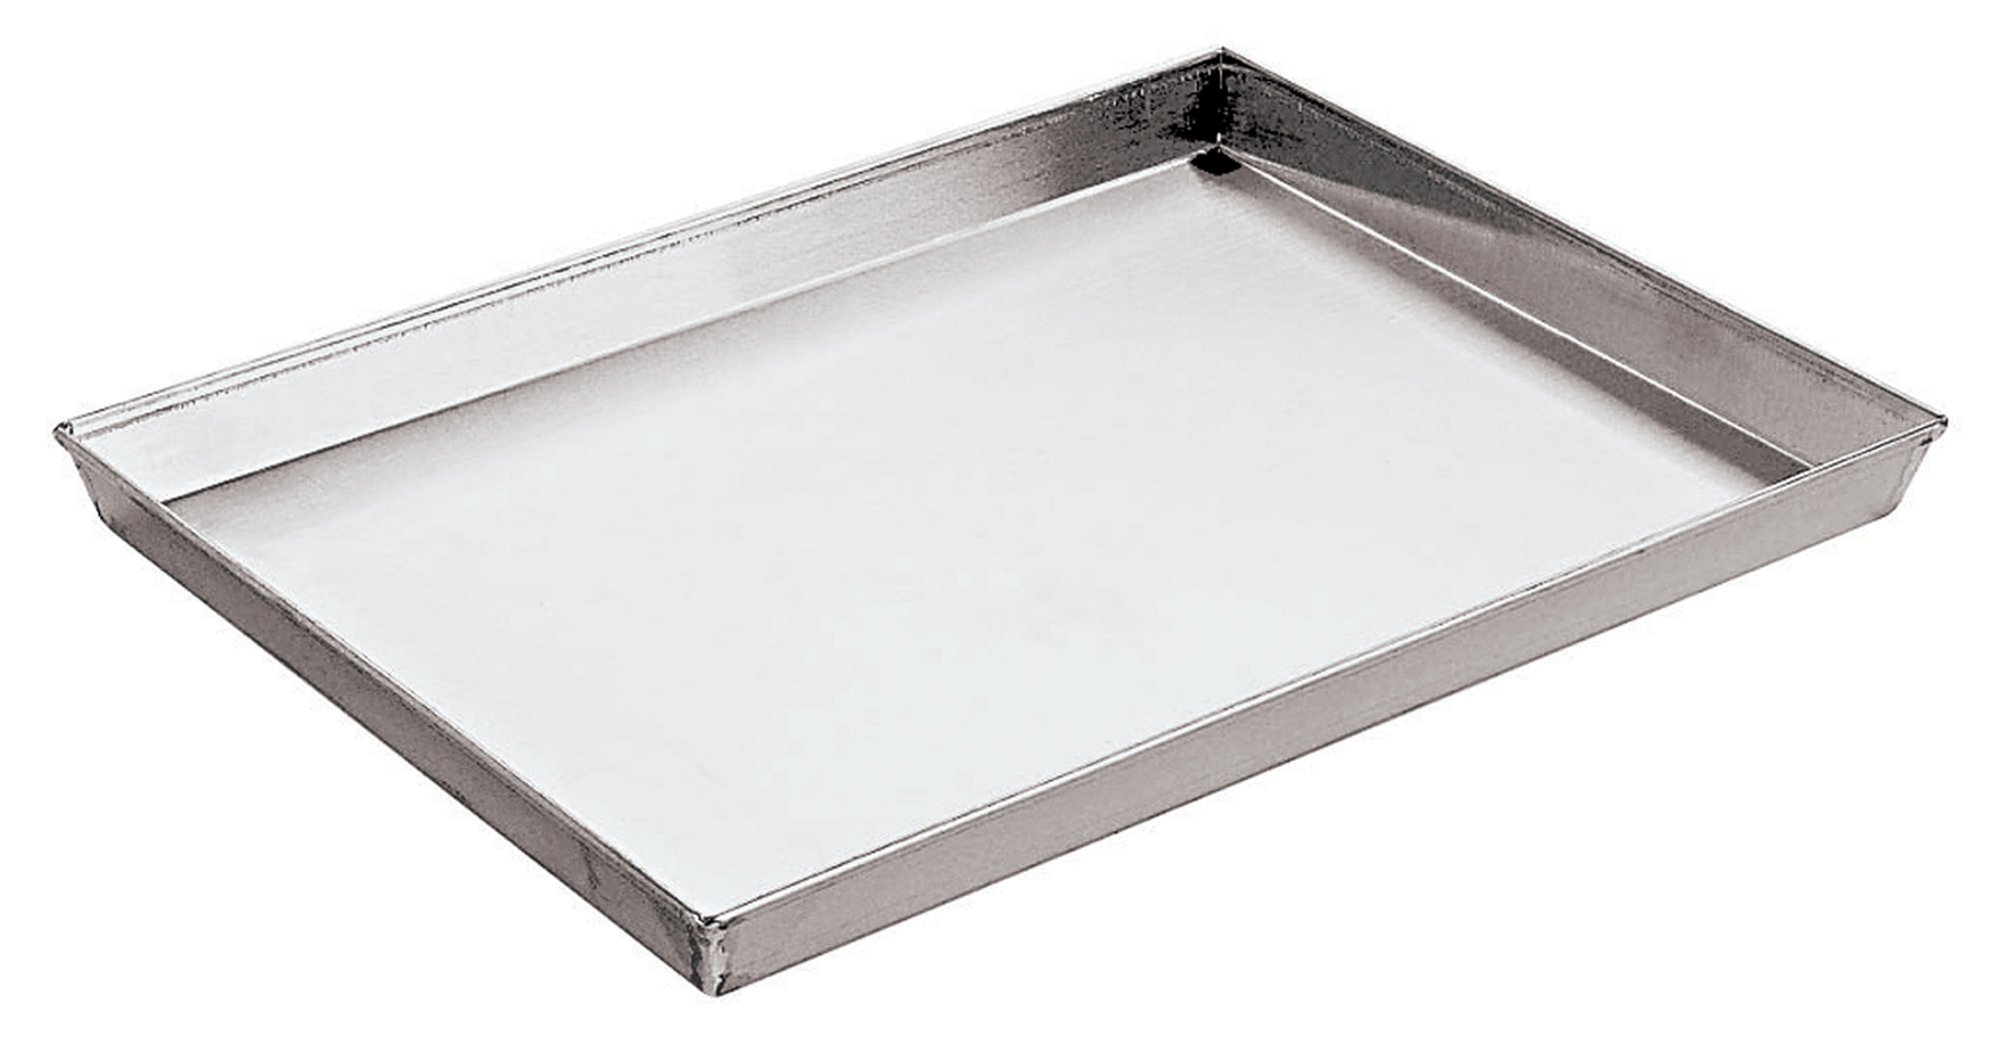 Paderno World Cuisine 23 5/8 Inch by 15 3/4 Inch by 1 1/8 Inch Splayed Sided Aluminized Steel Baking Sheet